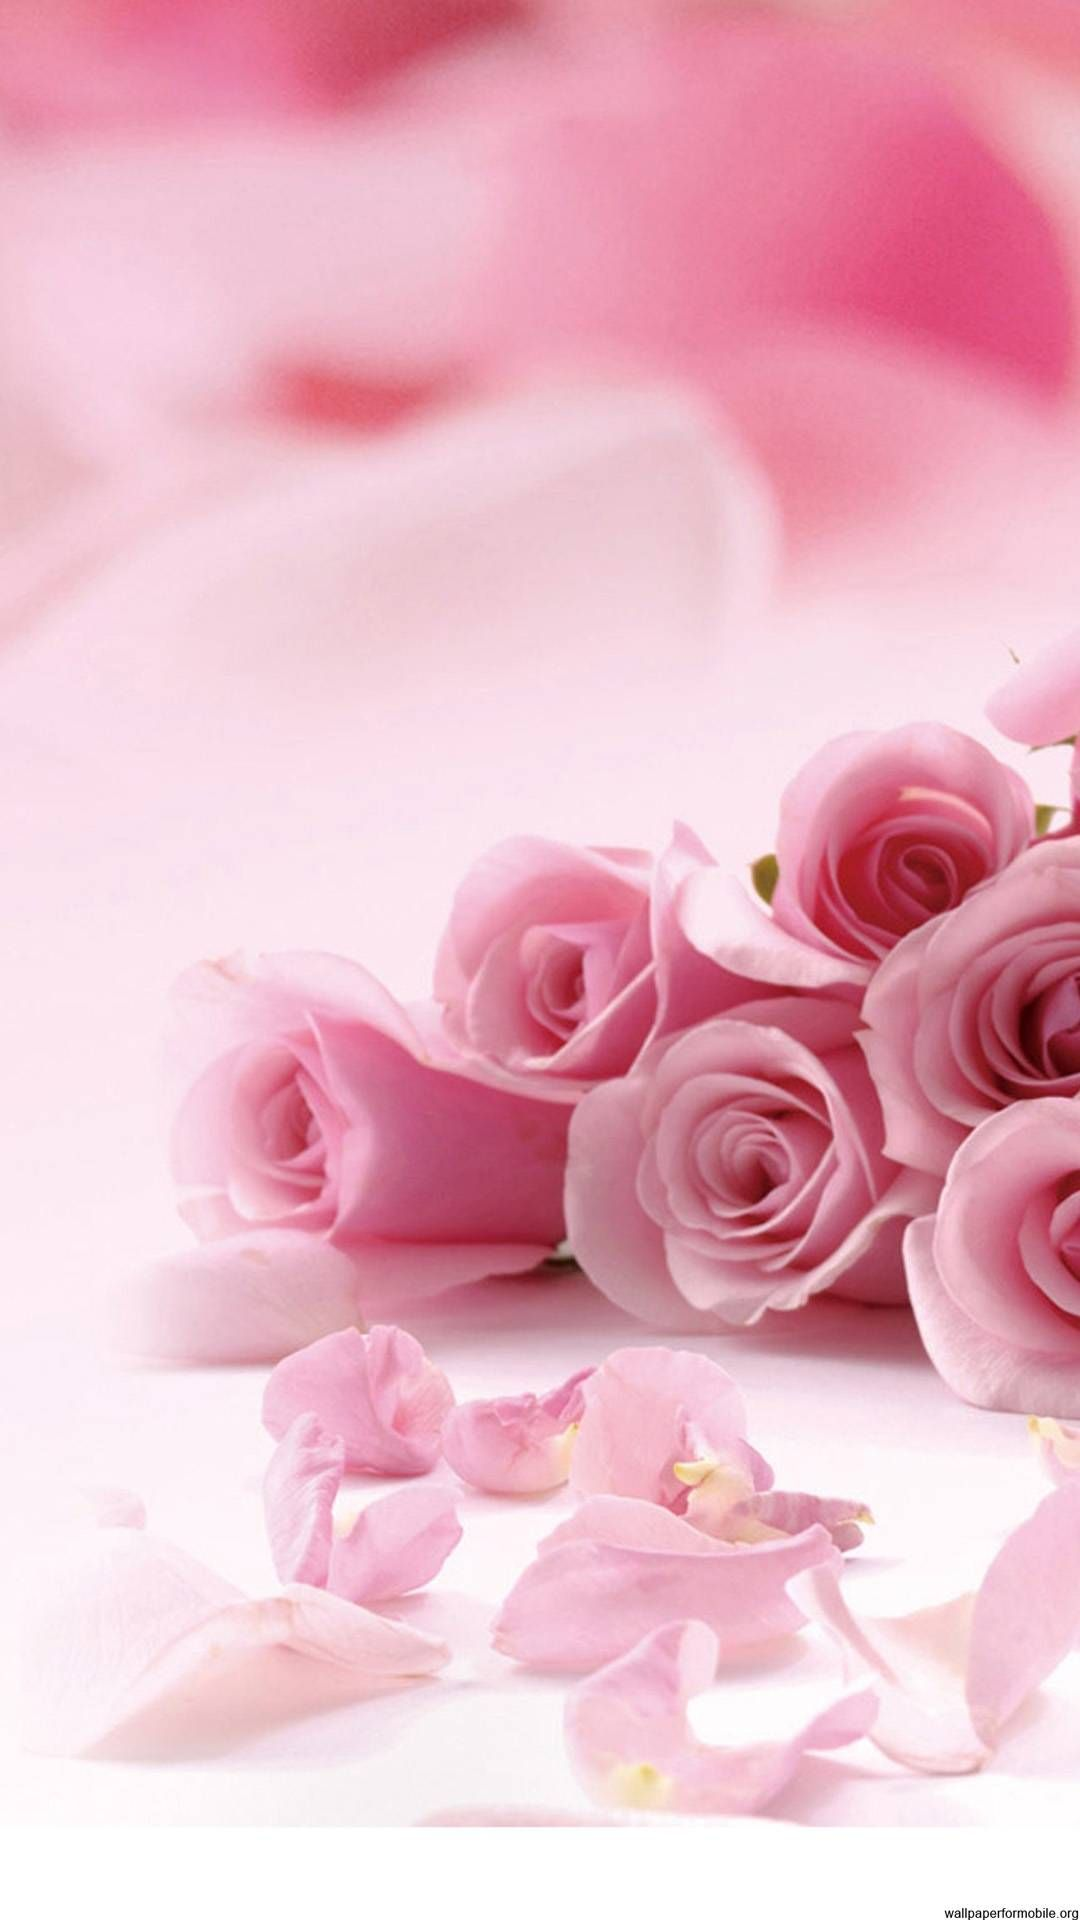 http://wallpaperformobile.org/12578/roses-pictures-free.html - Roses Pictures Free